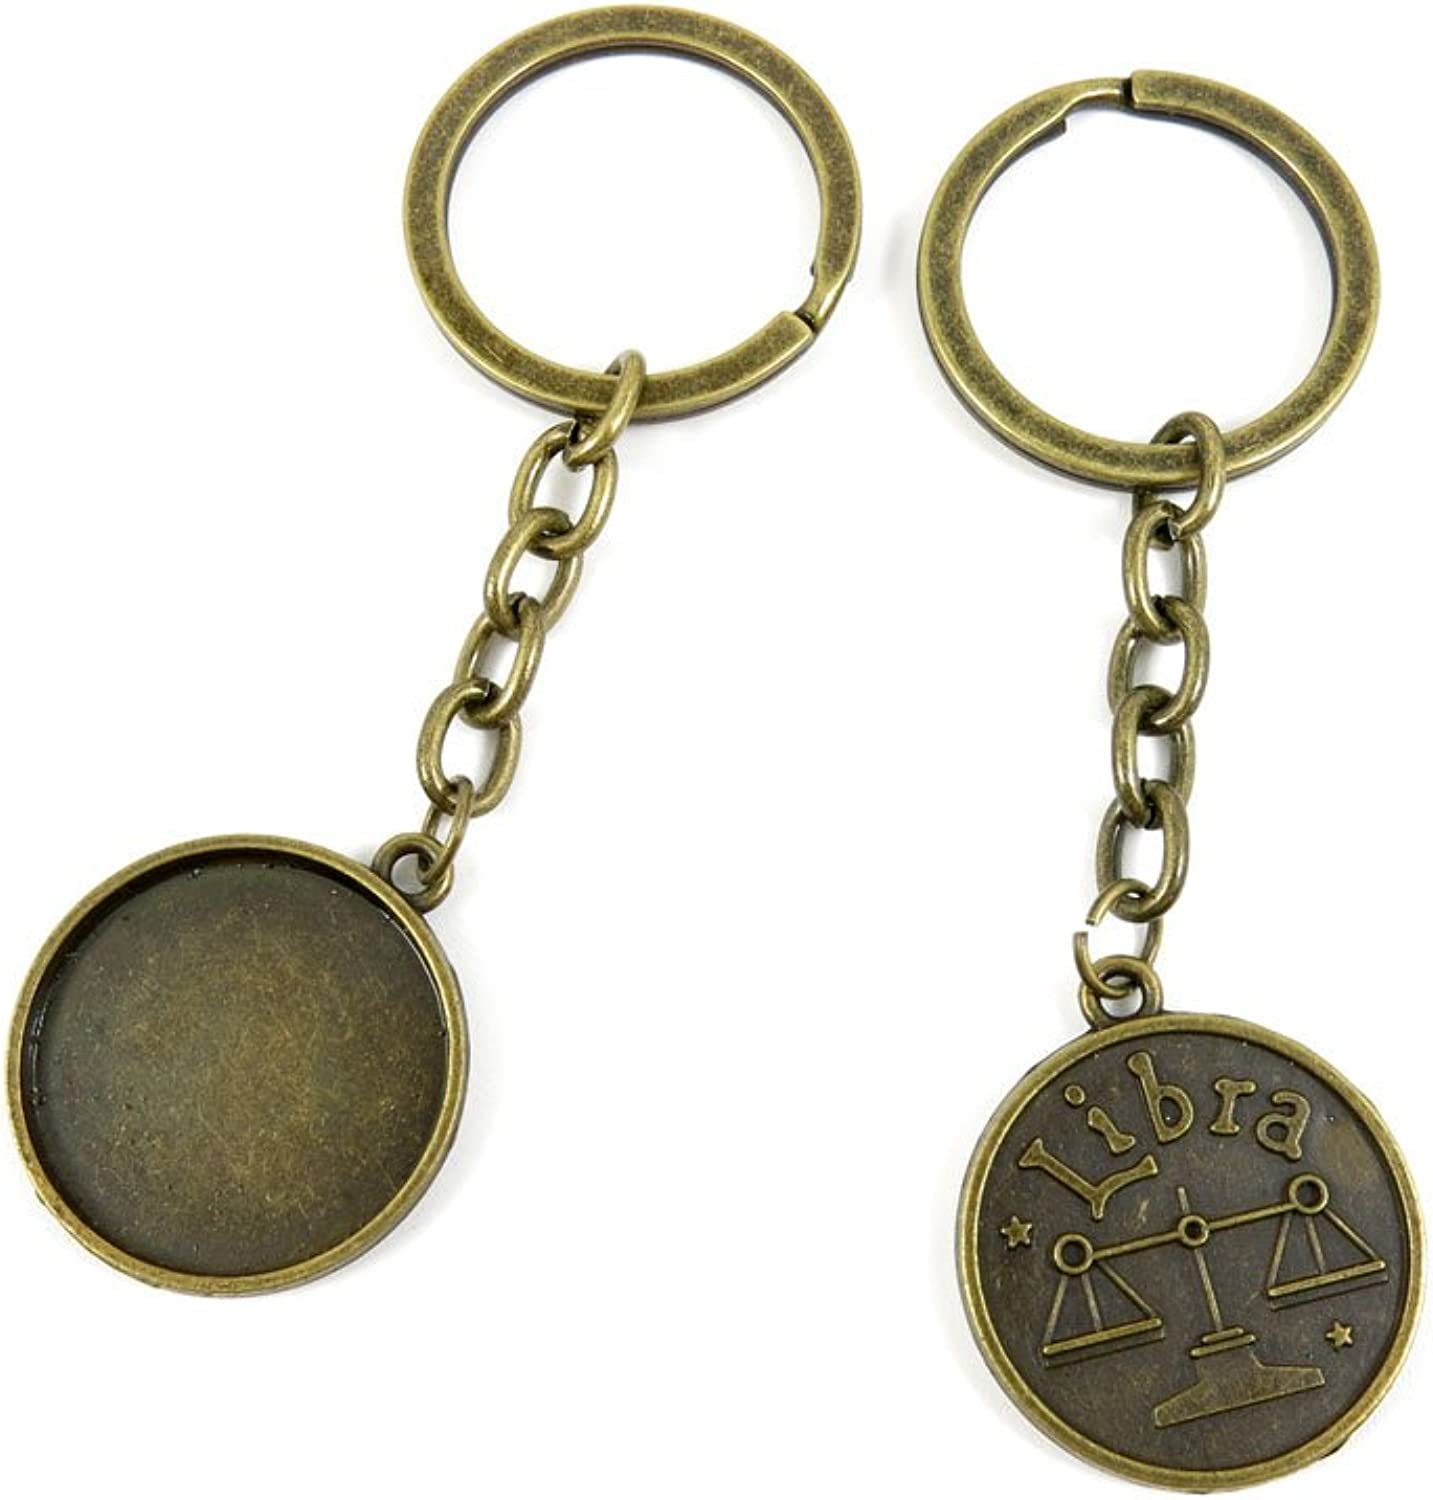 100 PCS Keyrings Keychains Key Ring Chains Tags Jewelry Findings Clasps Buckles Supplies I4ZI2 Libra Cabochon Blank Base